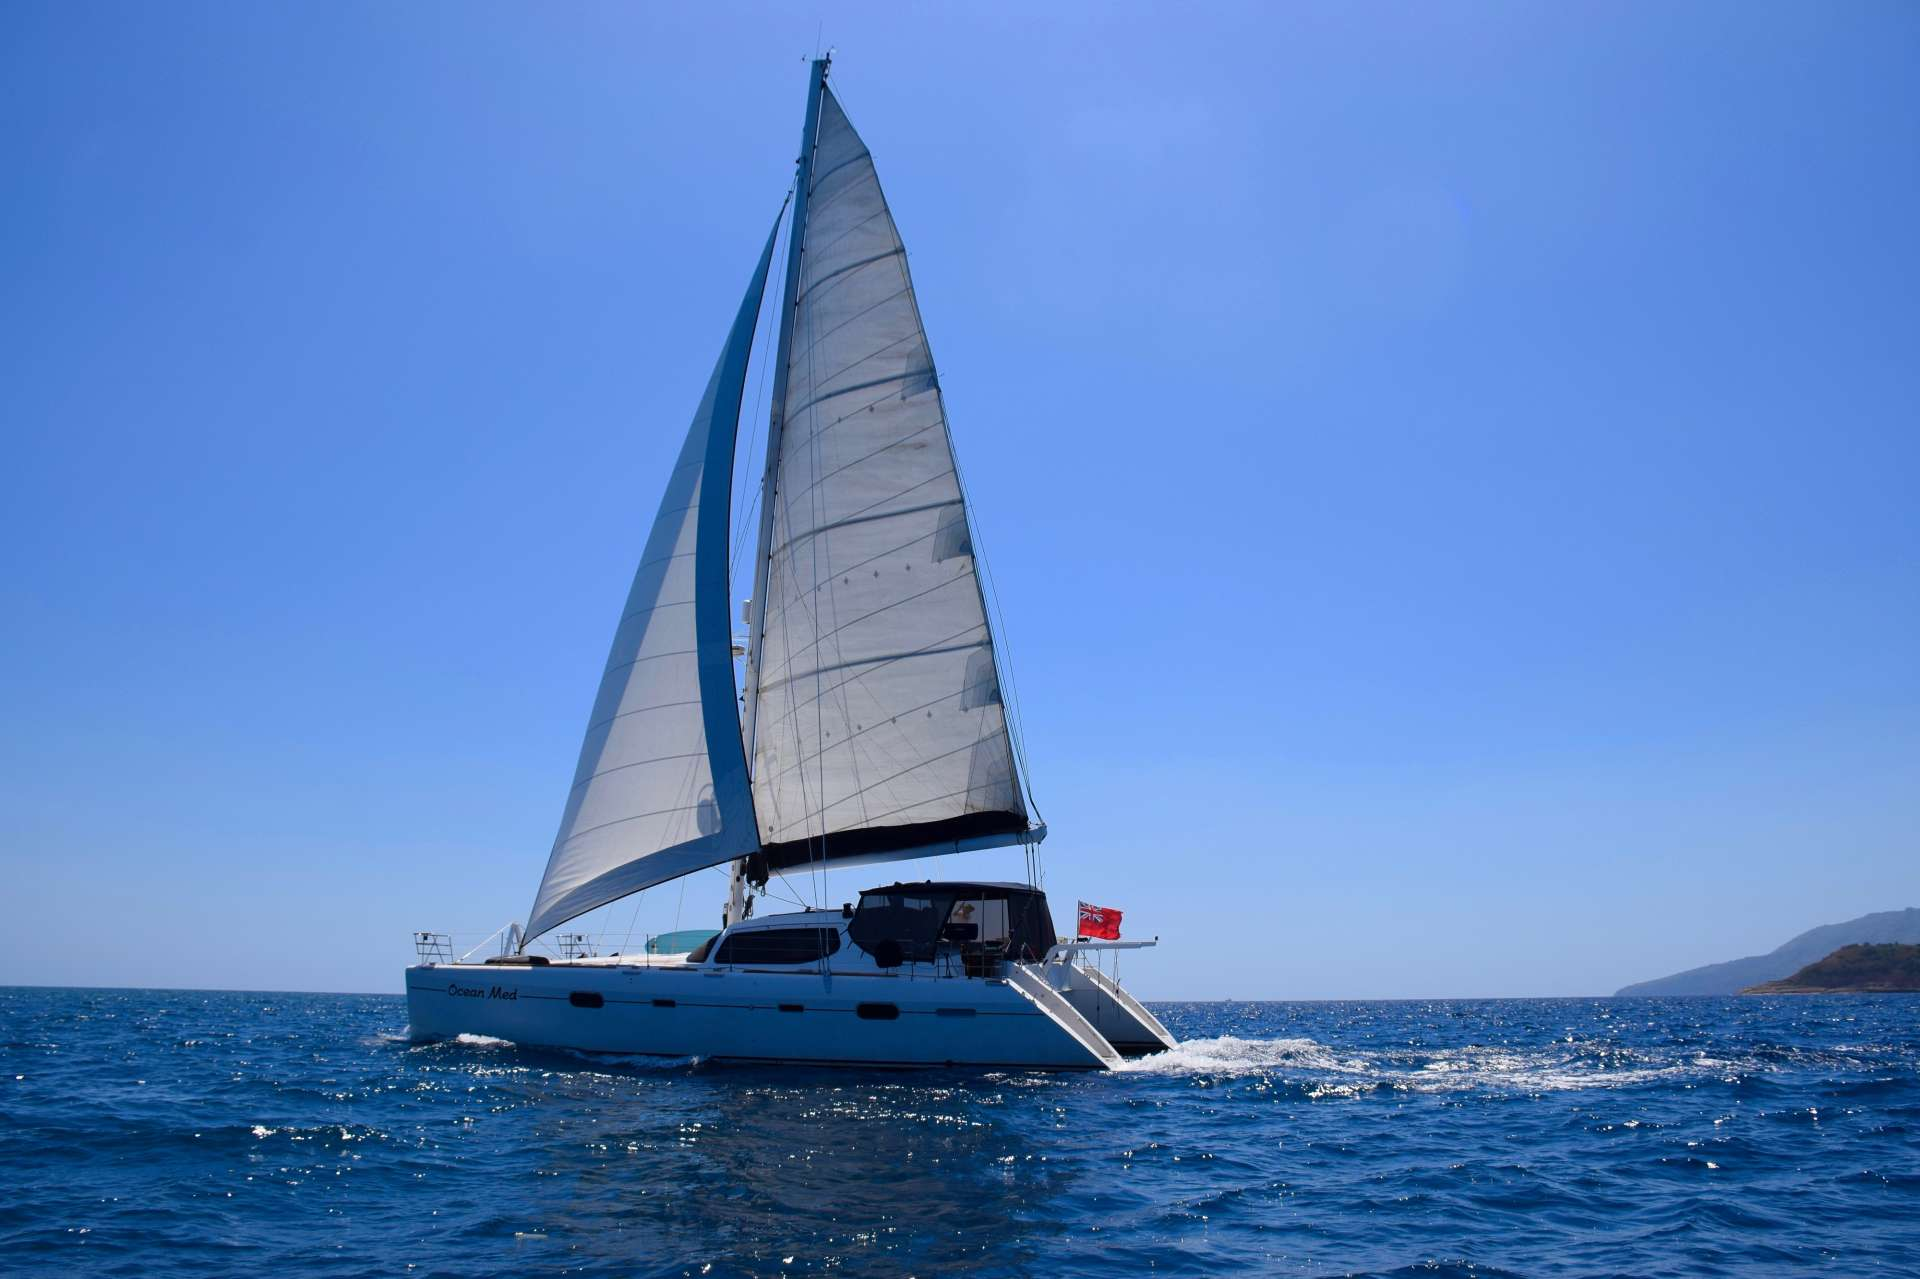 Cat Yacht 'Cat', 9 PAX, 3 Crew, 59.00 Ft, 17.00 Meters, Built 2004, ALLIAURA MAR, Refit Year 2018